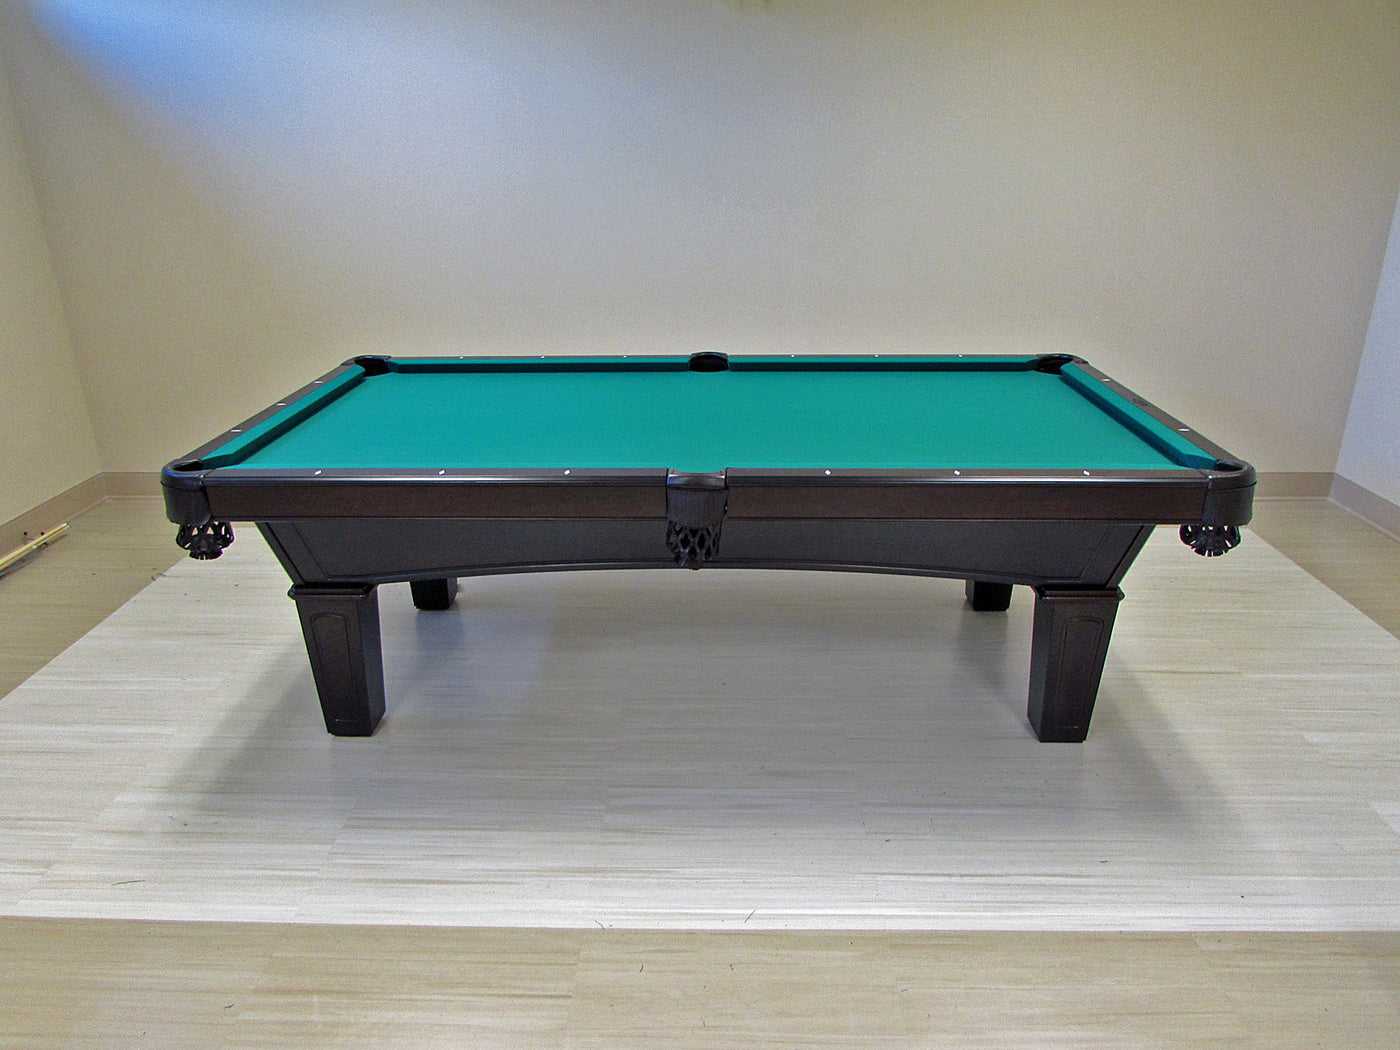 Olhausen Reno Pool Table installed in Baltimore Maryland